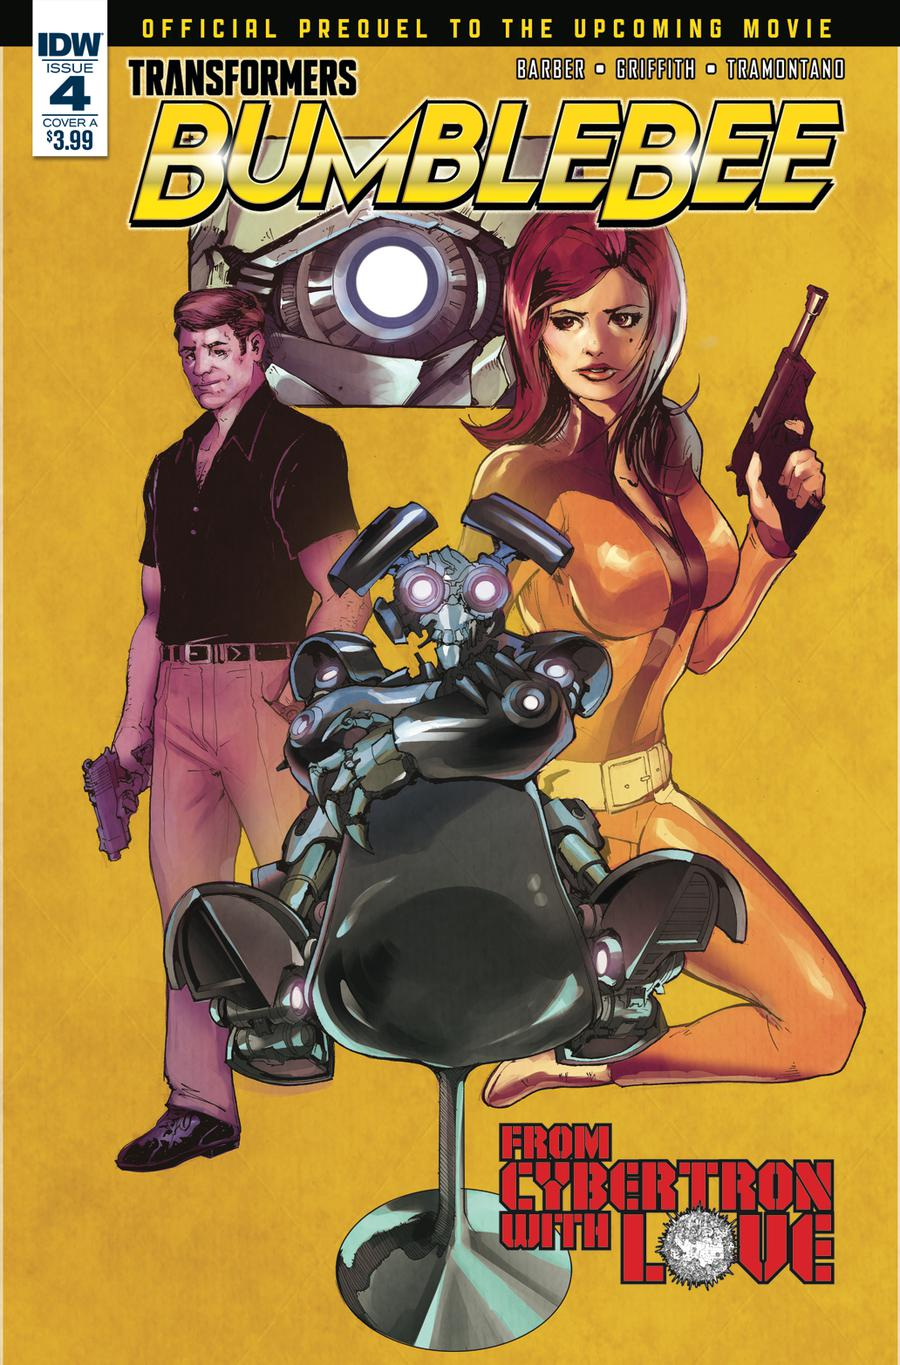 Transformers Bumblebee Movie Prequel #4 Cover A Regular Andrew Griffith Cover